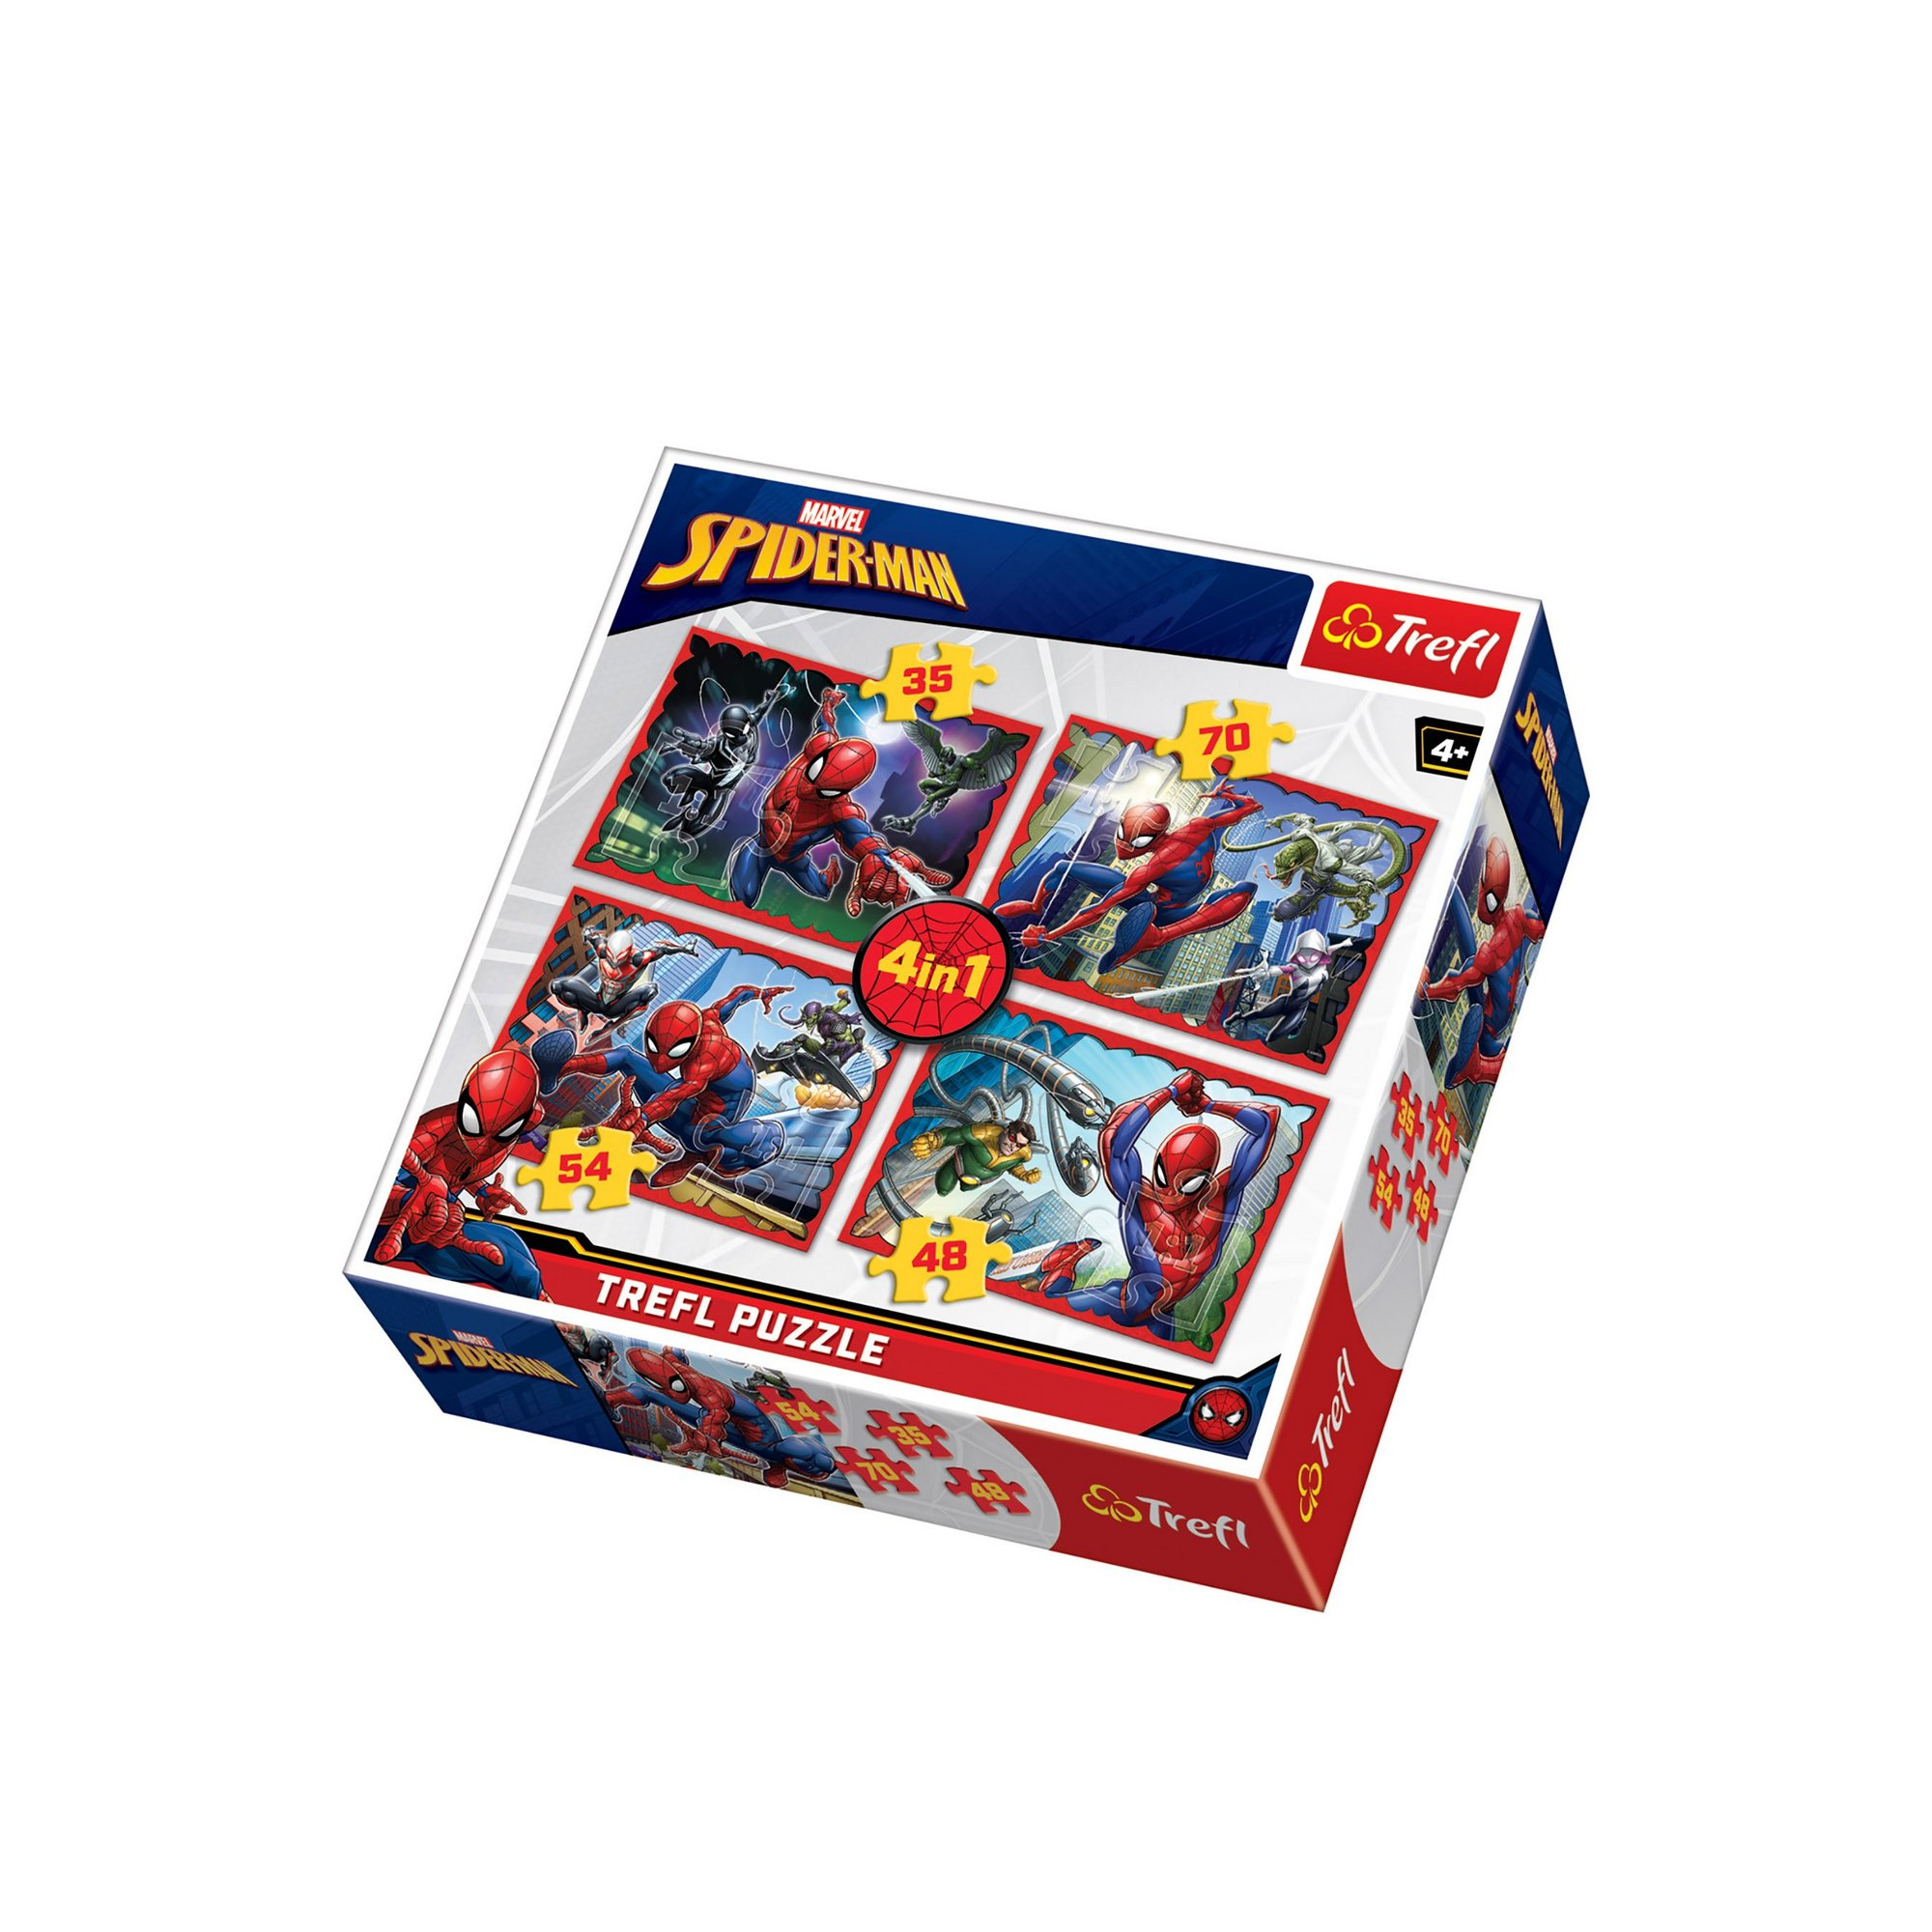 Image of 4 in 1 Spiderman Jigsaw Puzzle